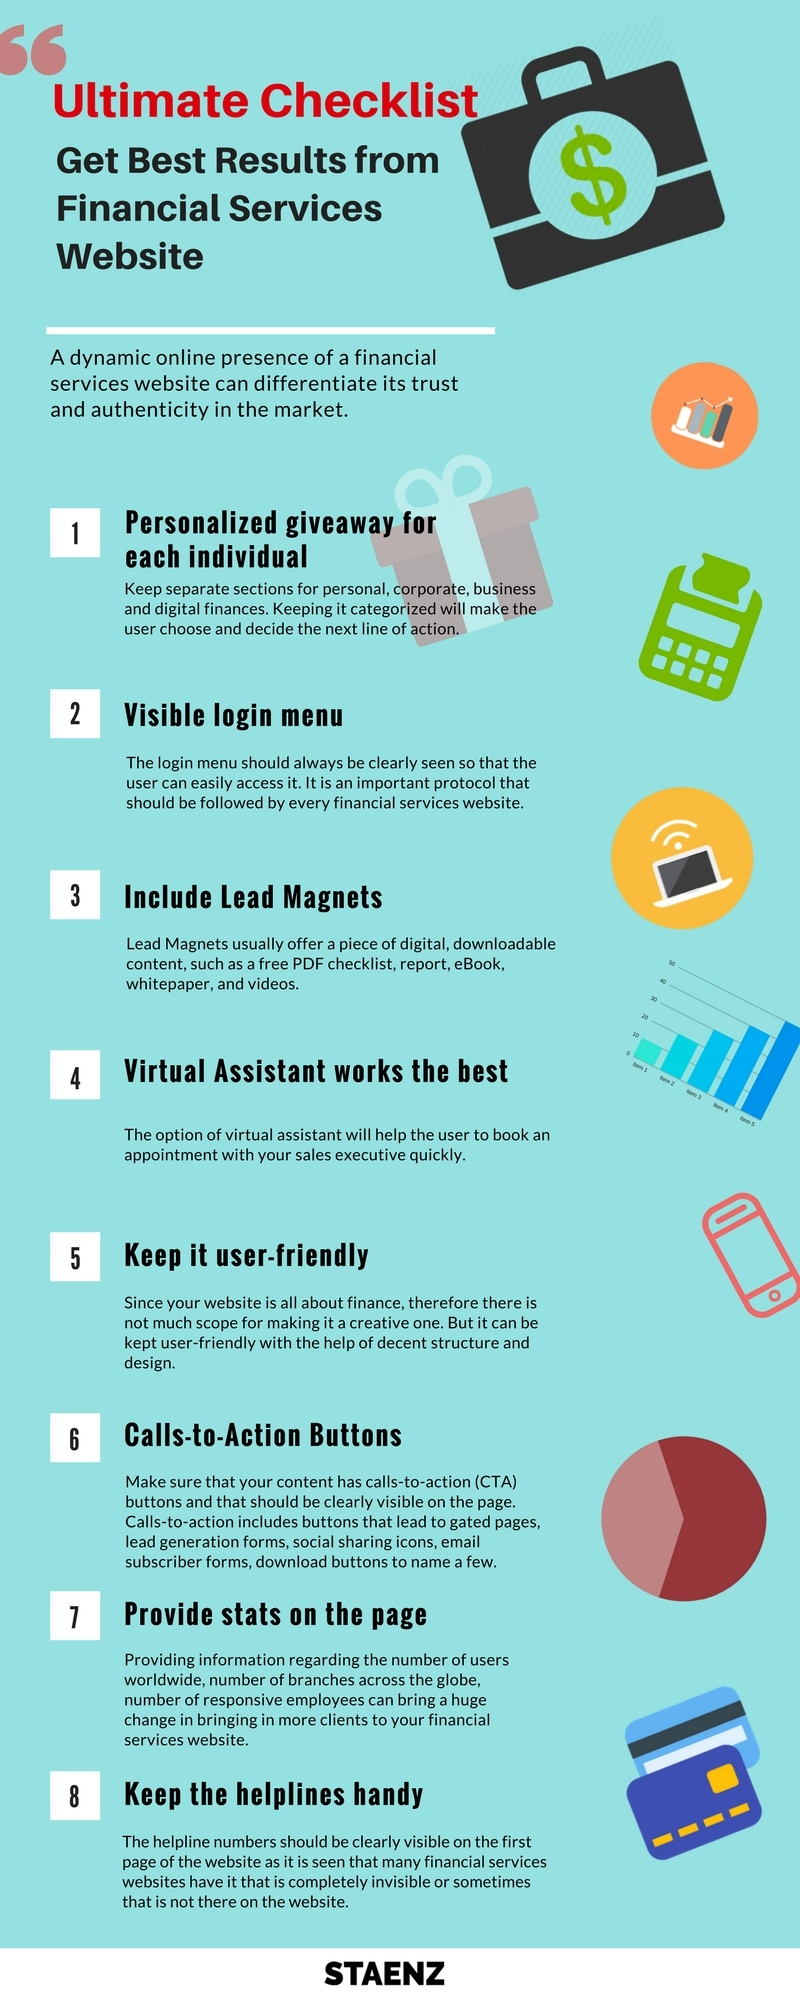 Infographic - Ultimate Checklist for Best Financial Services Website